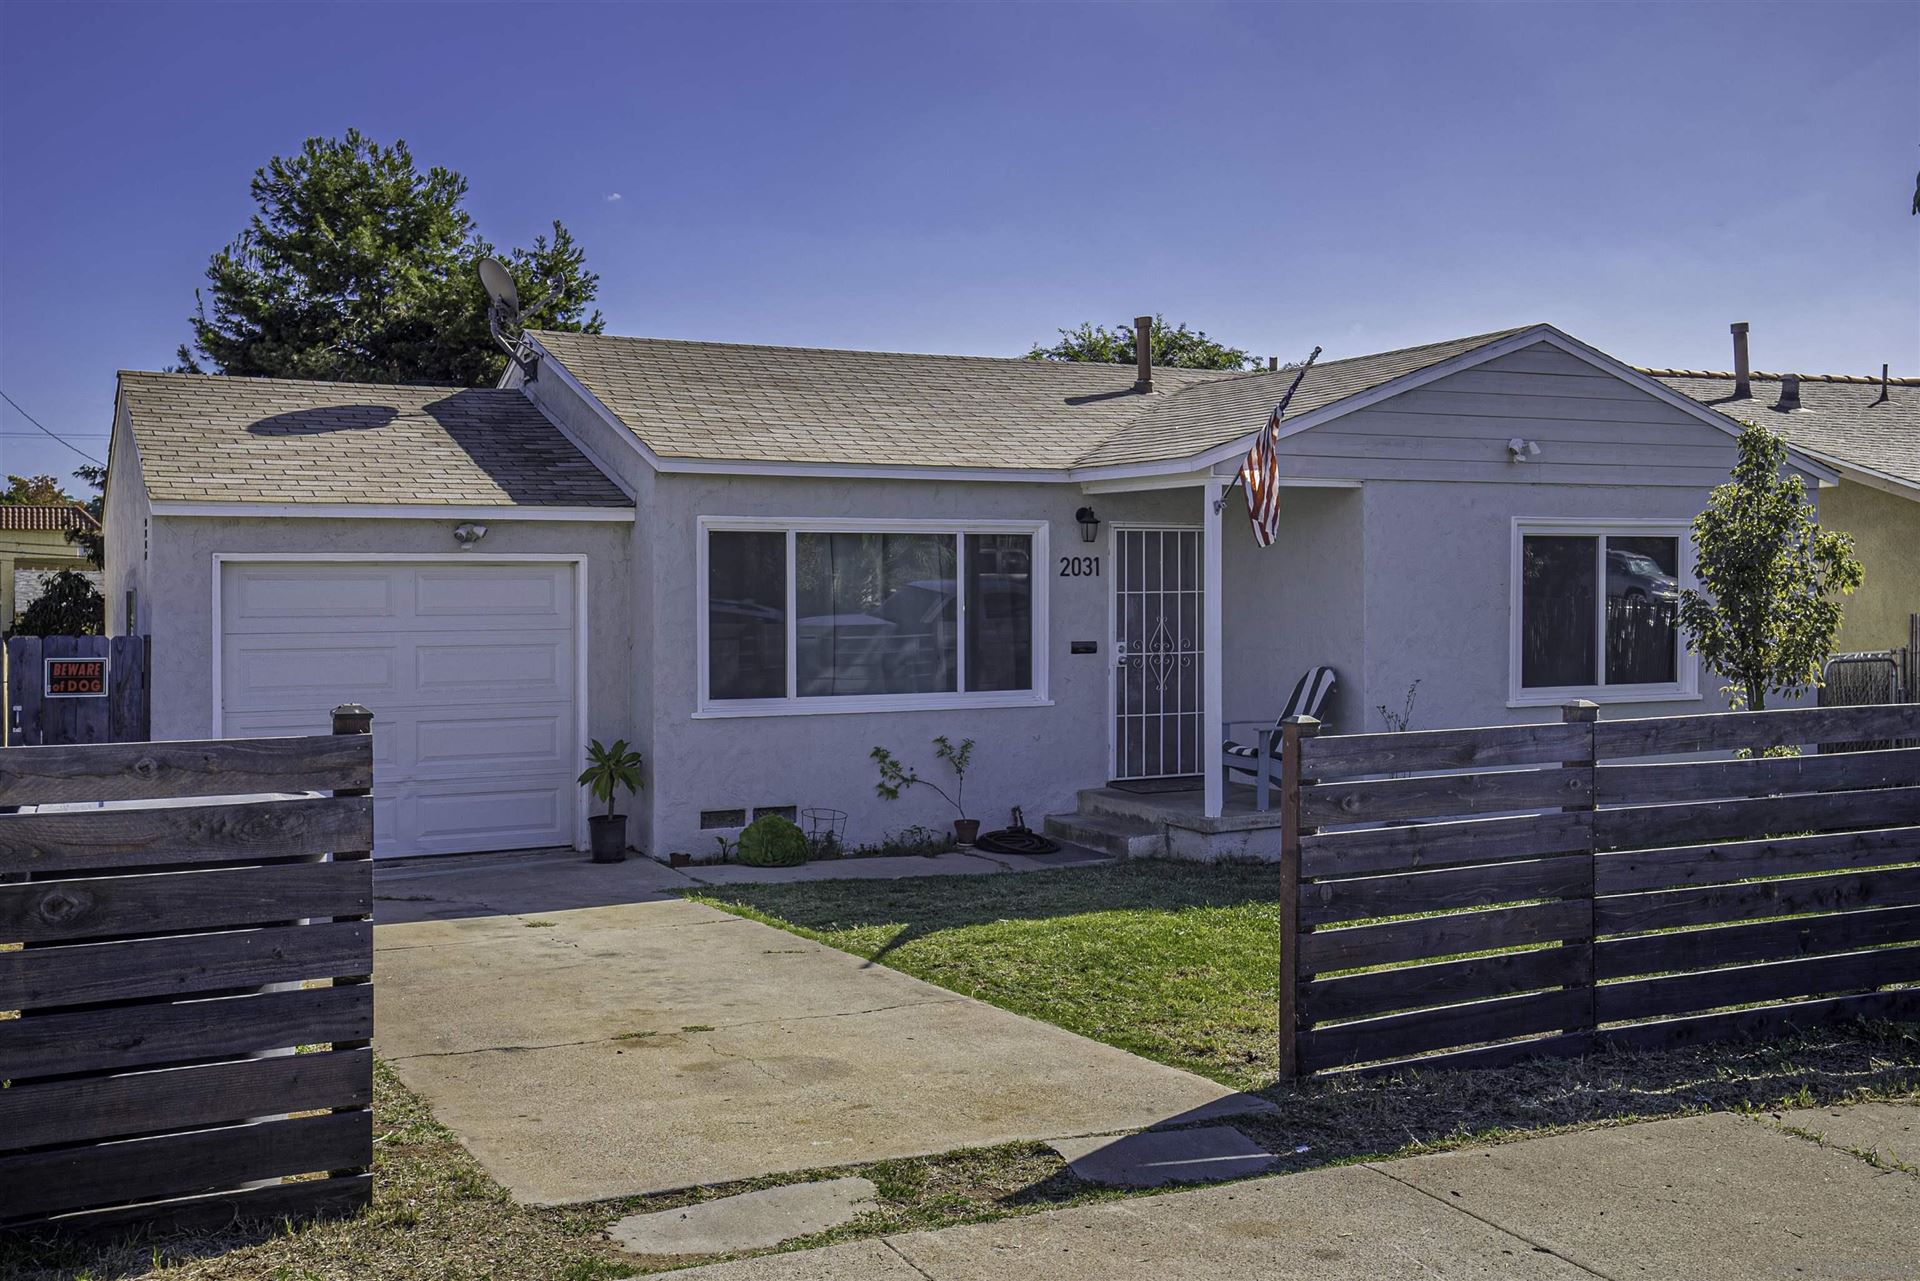 Photo of 2031 K Ave, National City, CA 91950 (MLS # 210029363)